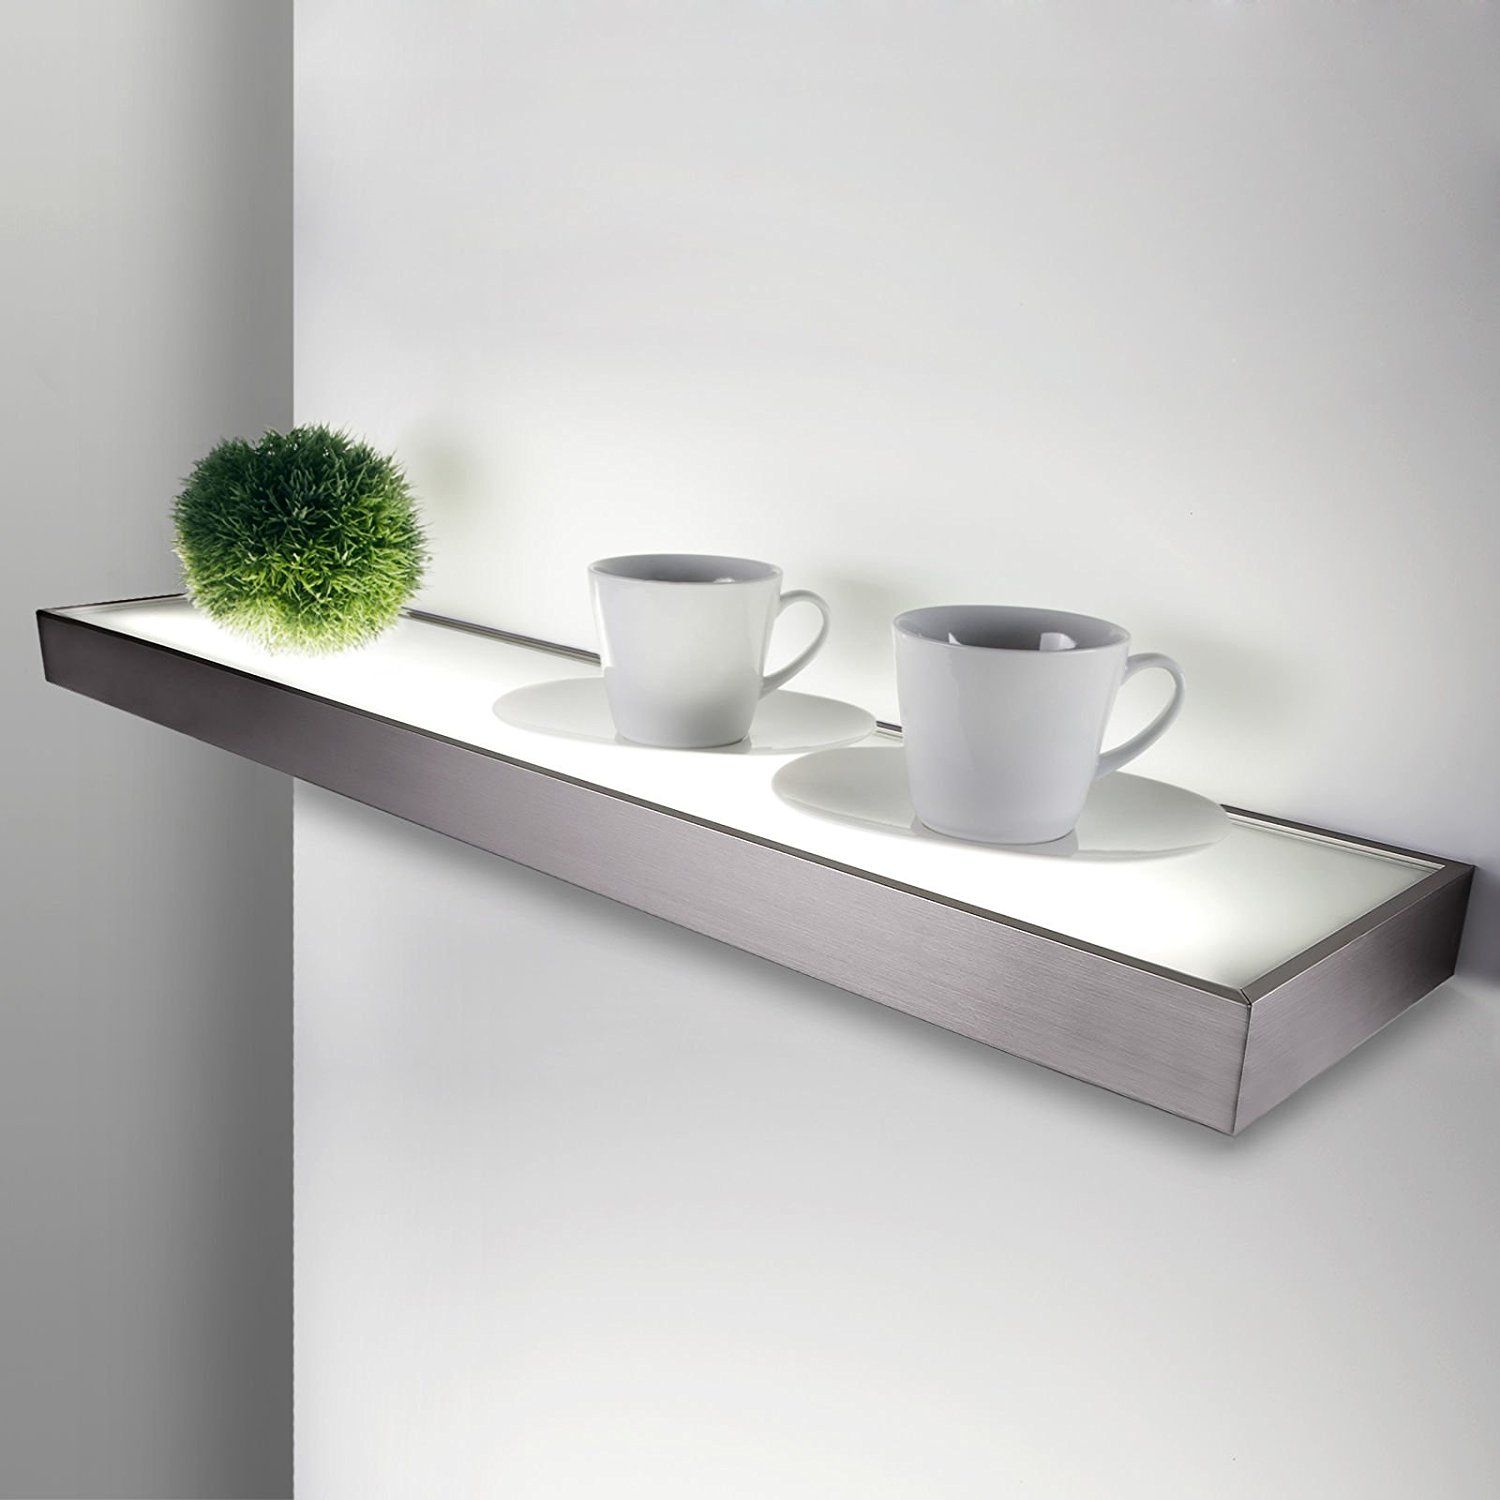 Steckdosensäule Küche So Tech Illuminated Shelf Dallas 1200 X 200 Mm 28 Watt